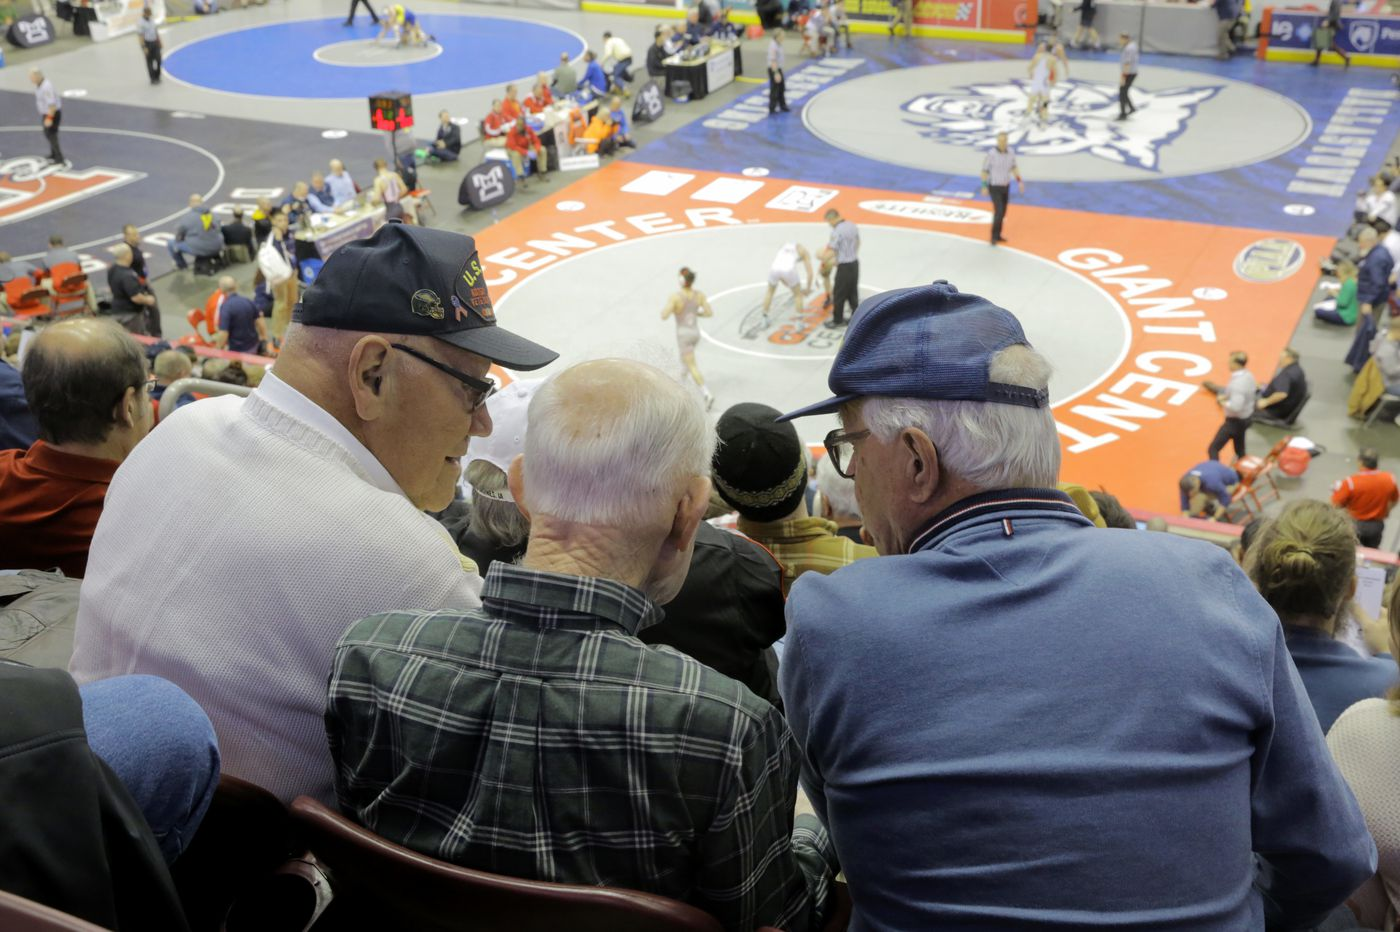 For more than half a century, three old friends head west for their love of wrestling